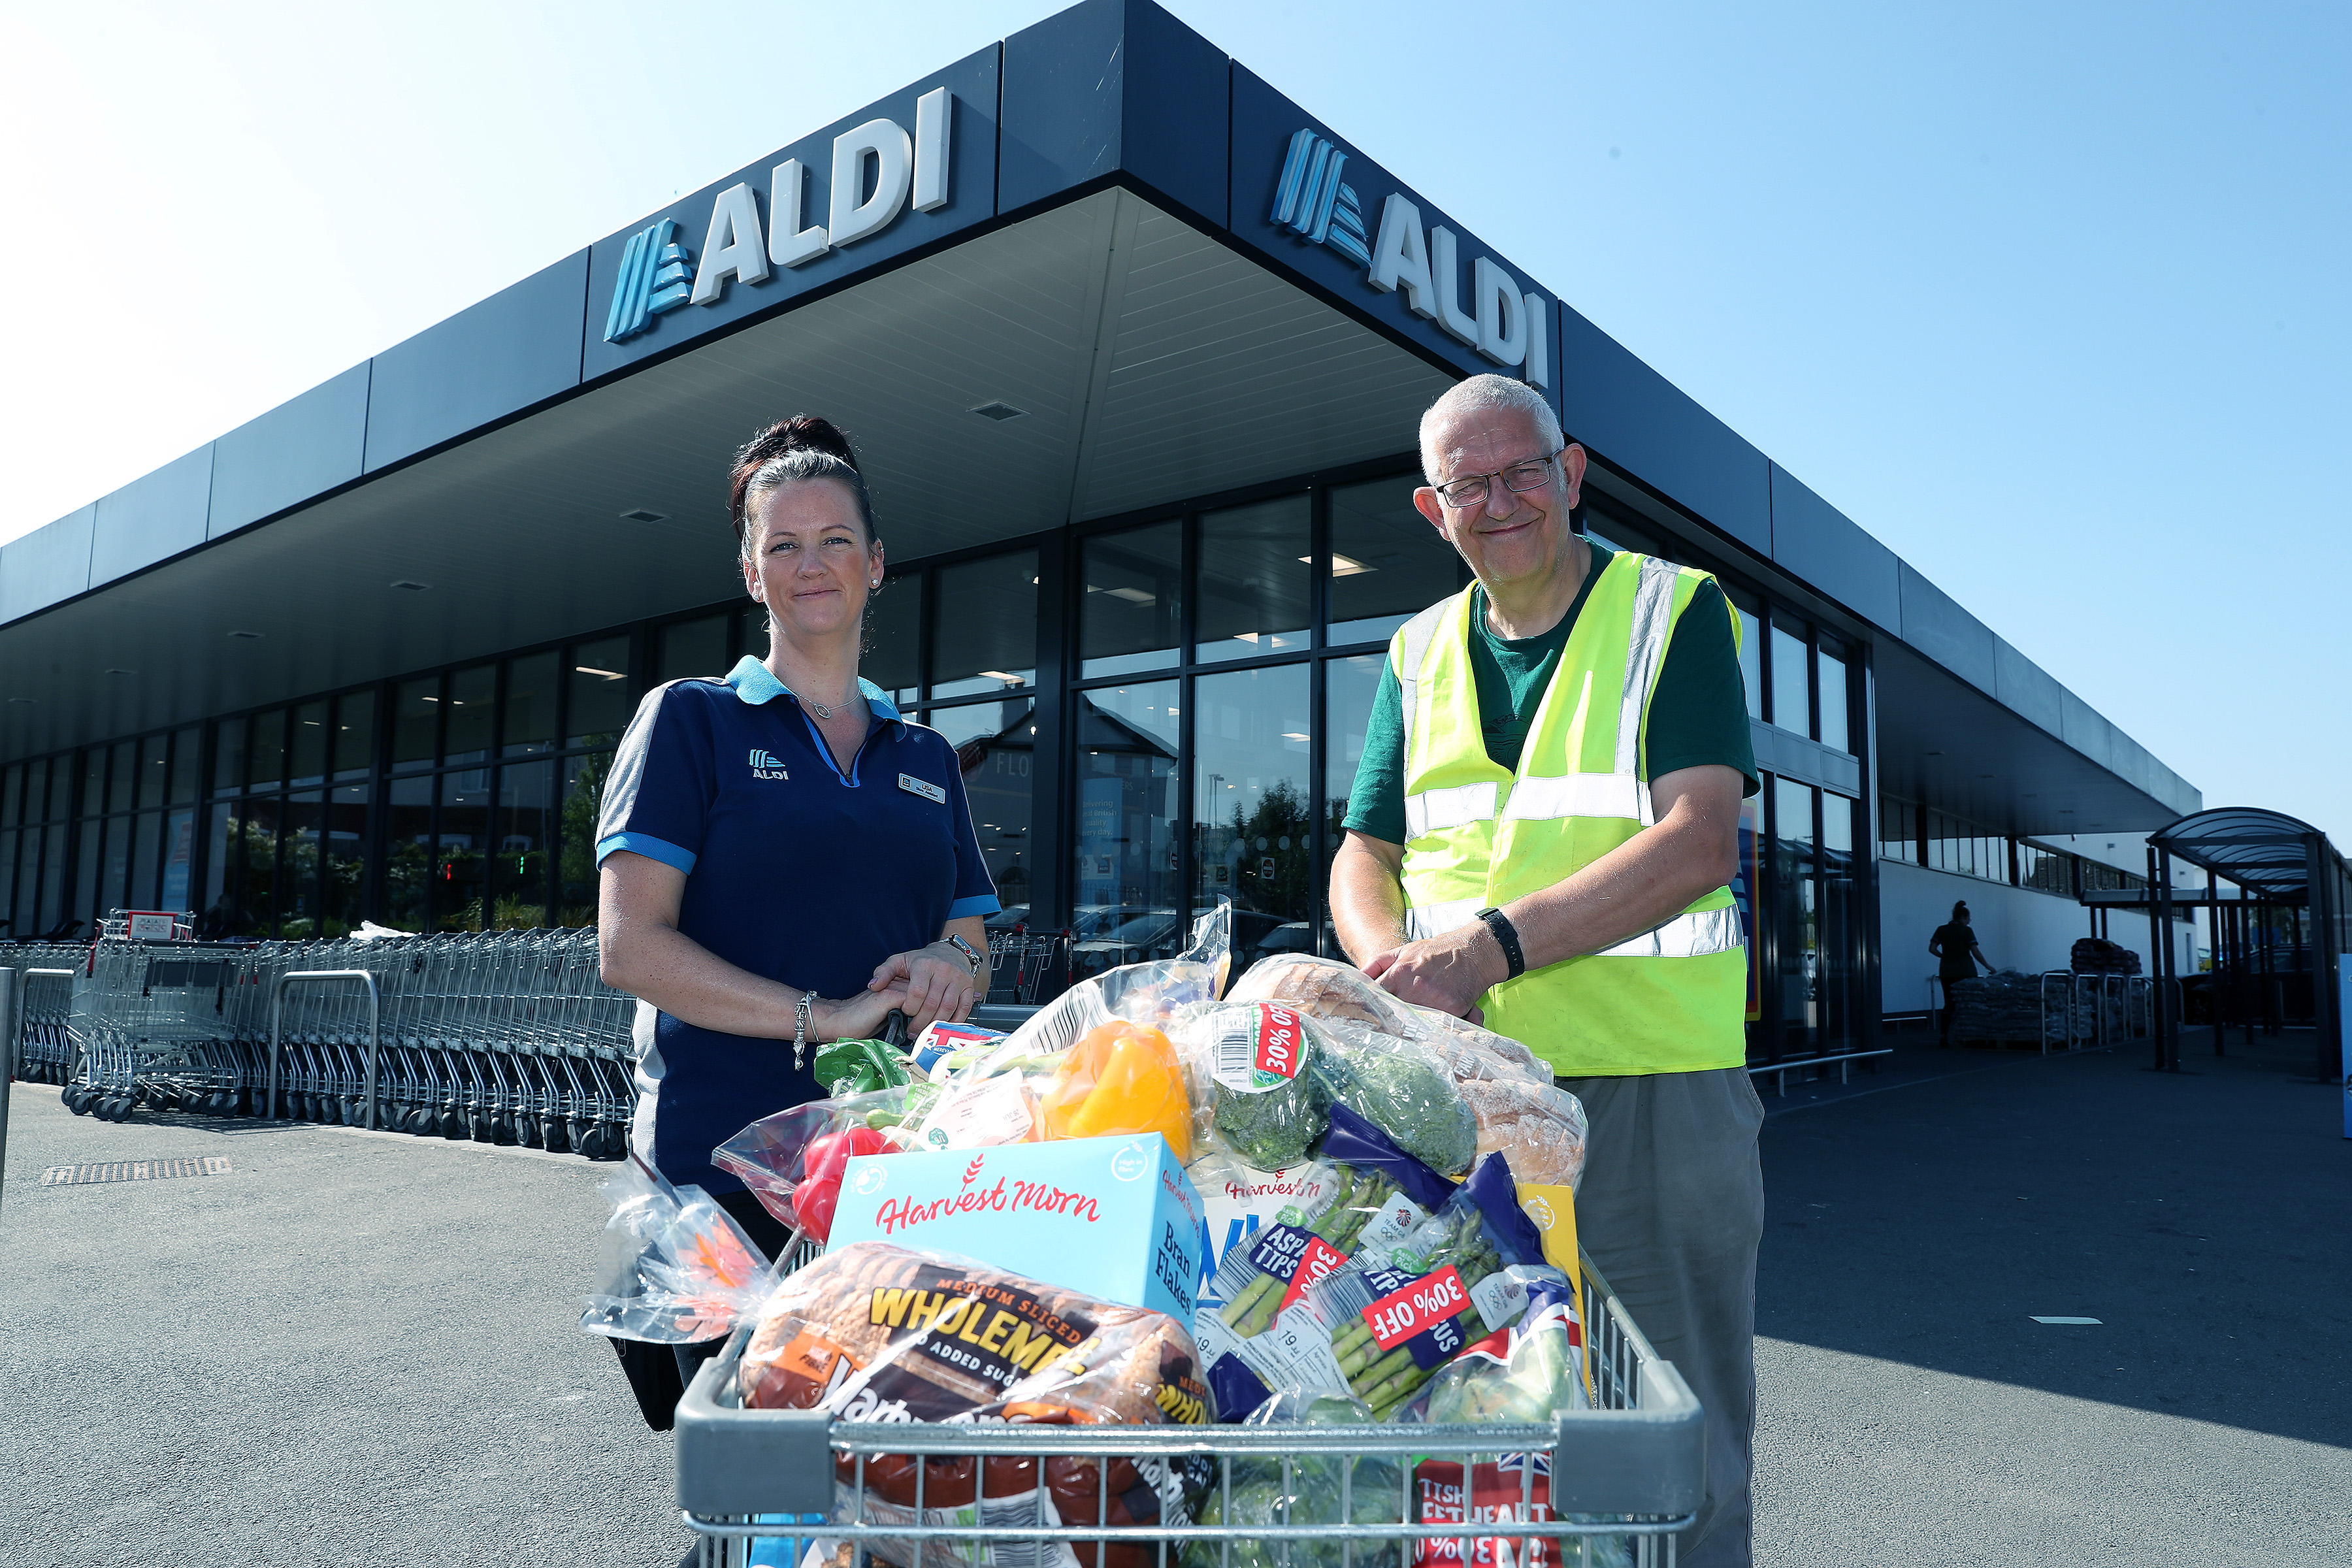 More than 33,000 meals donated to Merseyside families during the school holidays